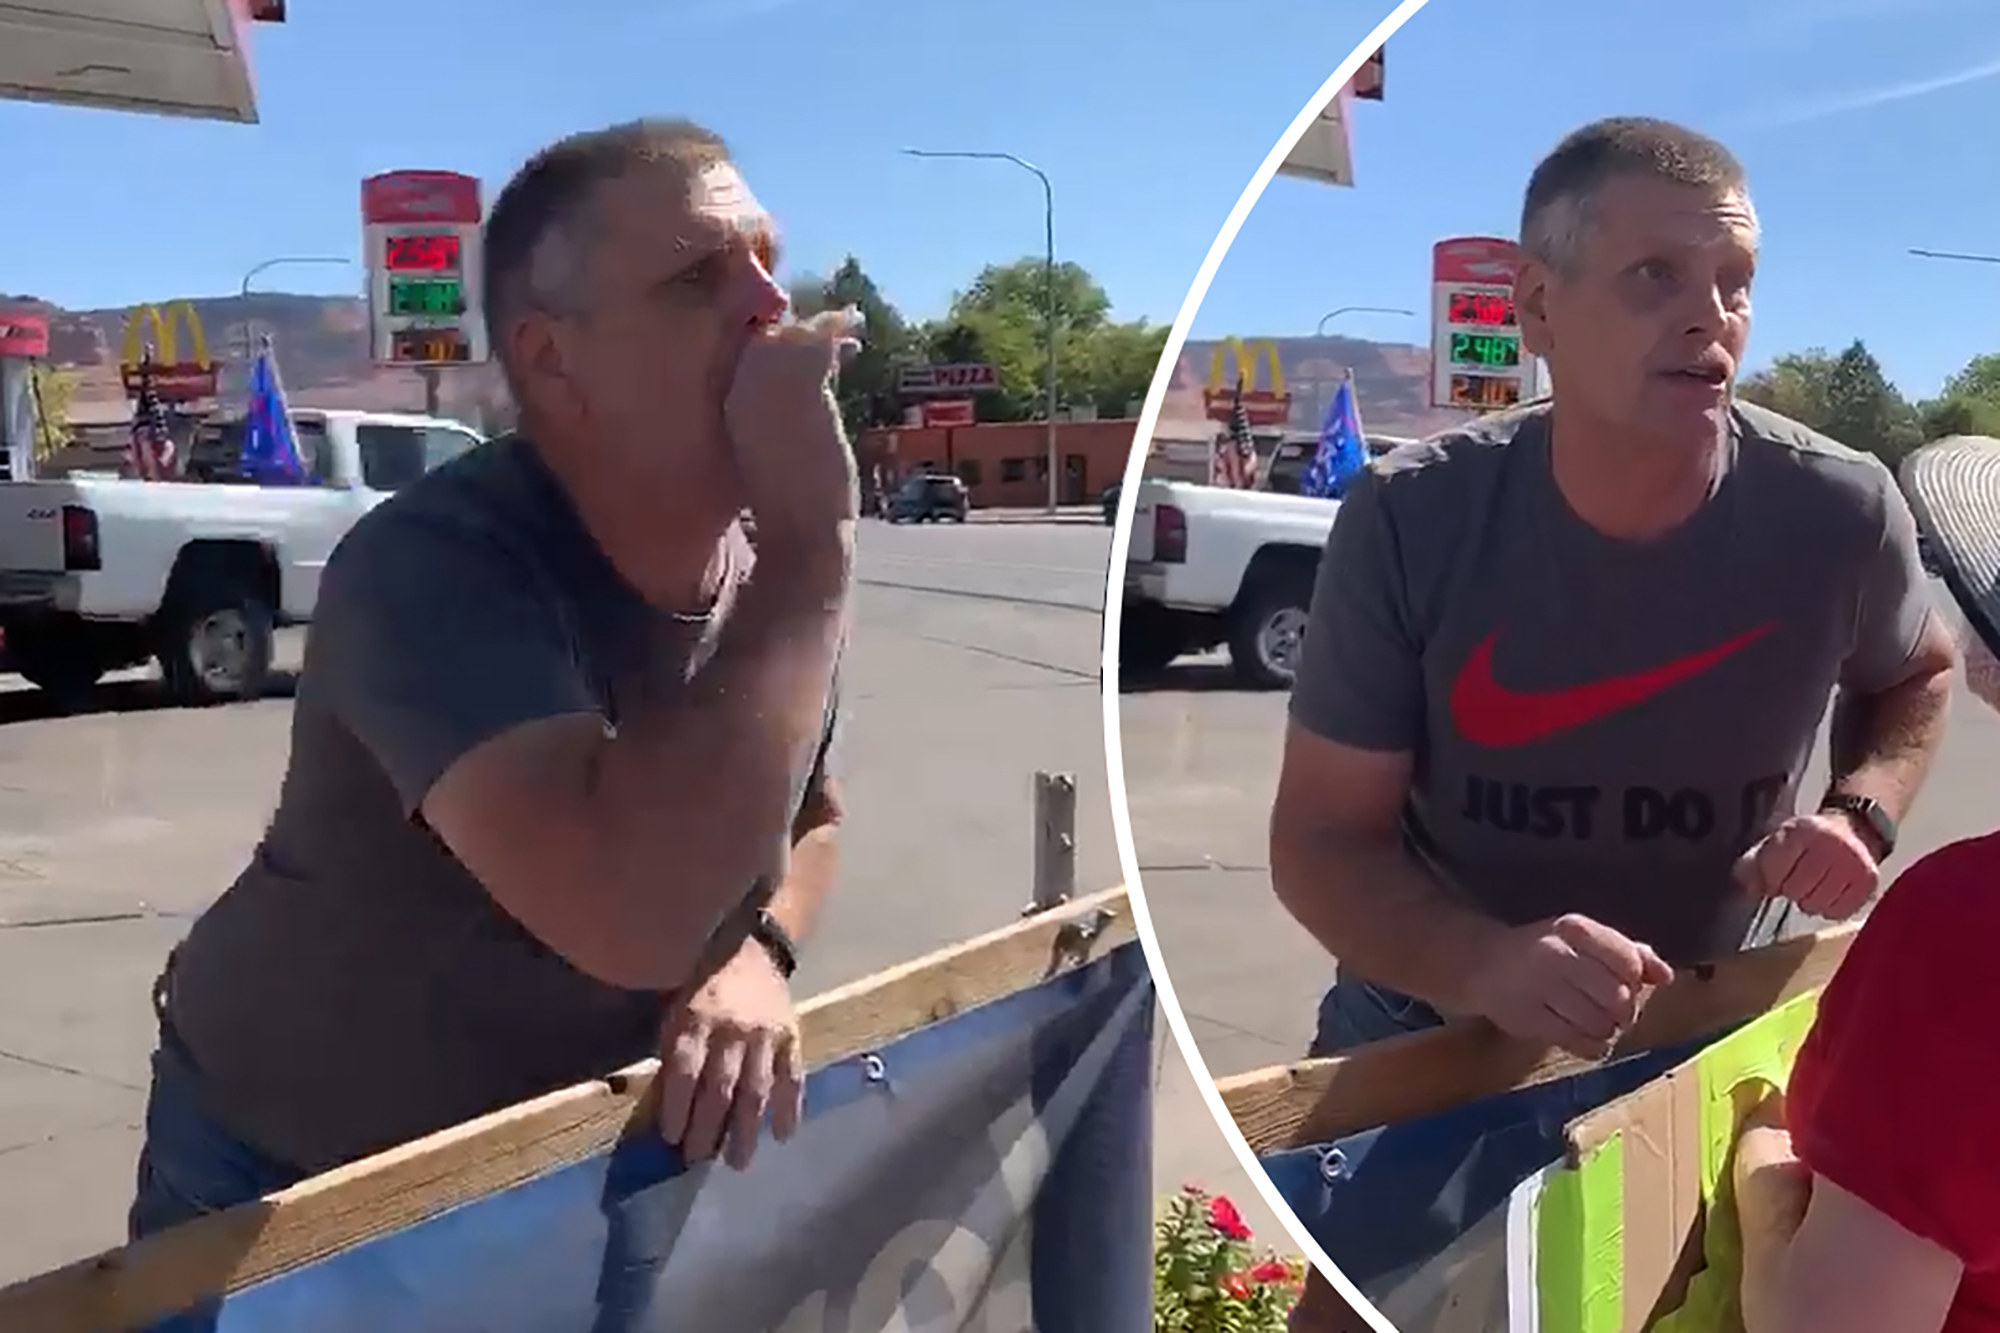 Utah man who coughed on BLM protesters apologizes — sort of